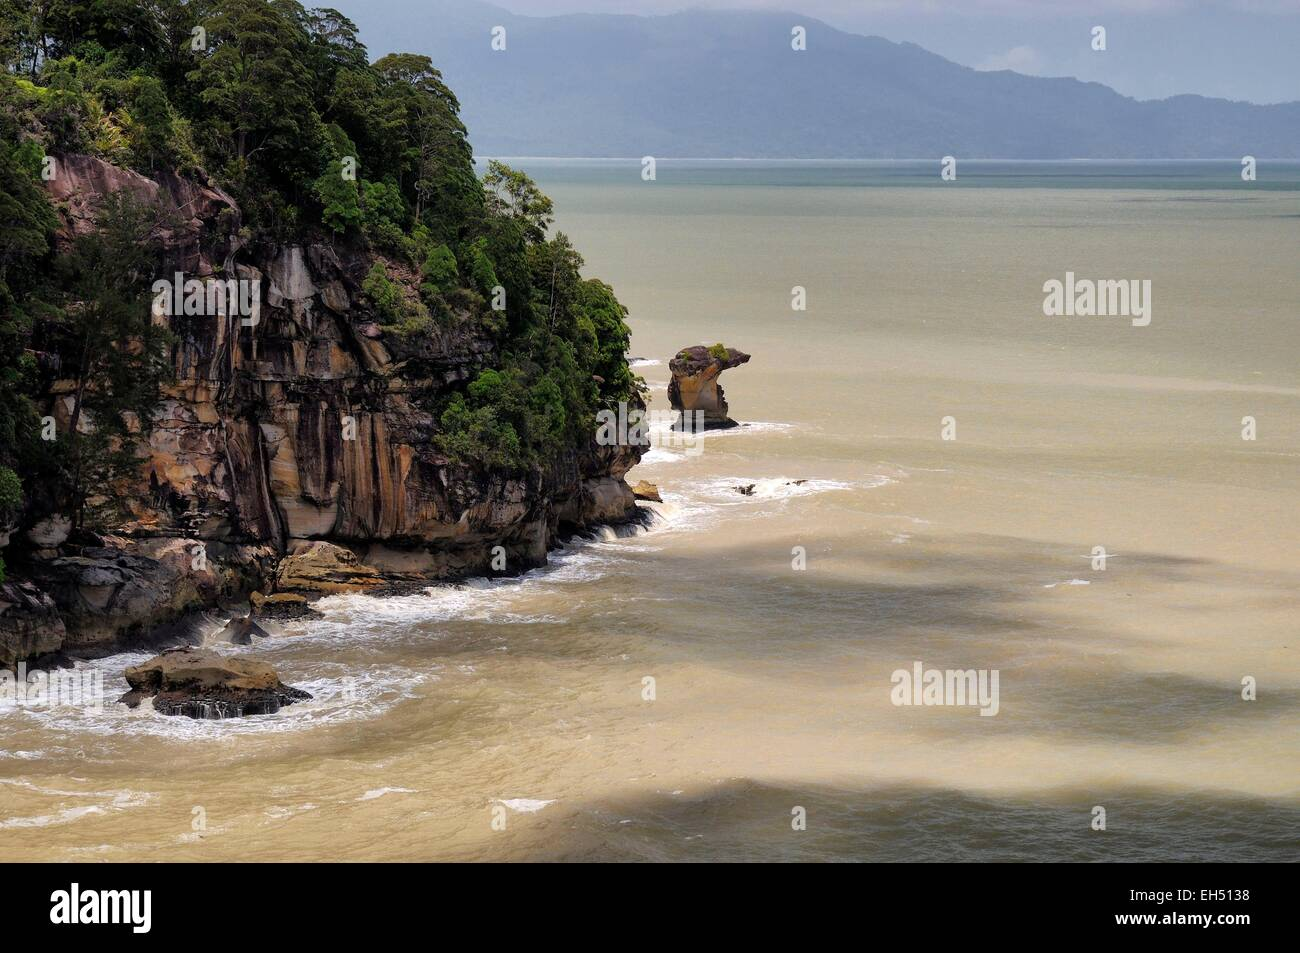 Malaysia, Borneo, Sarawak, Bako National Park, view on the South China sea from a lookout on the Telok Pandan Kecil - Stock Image